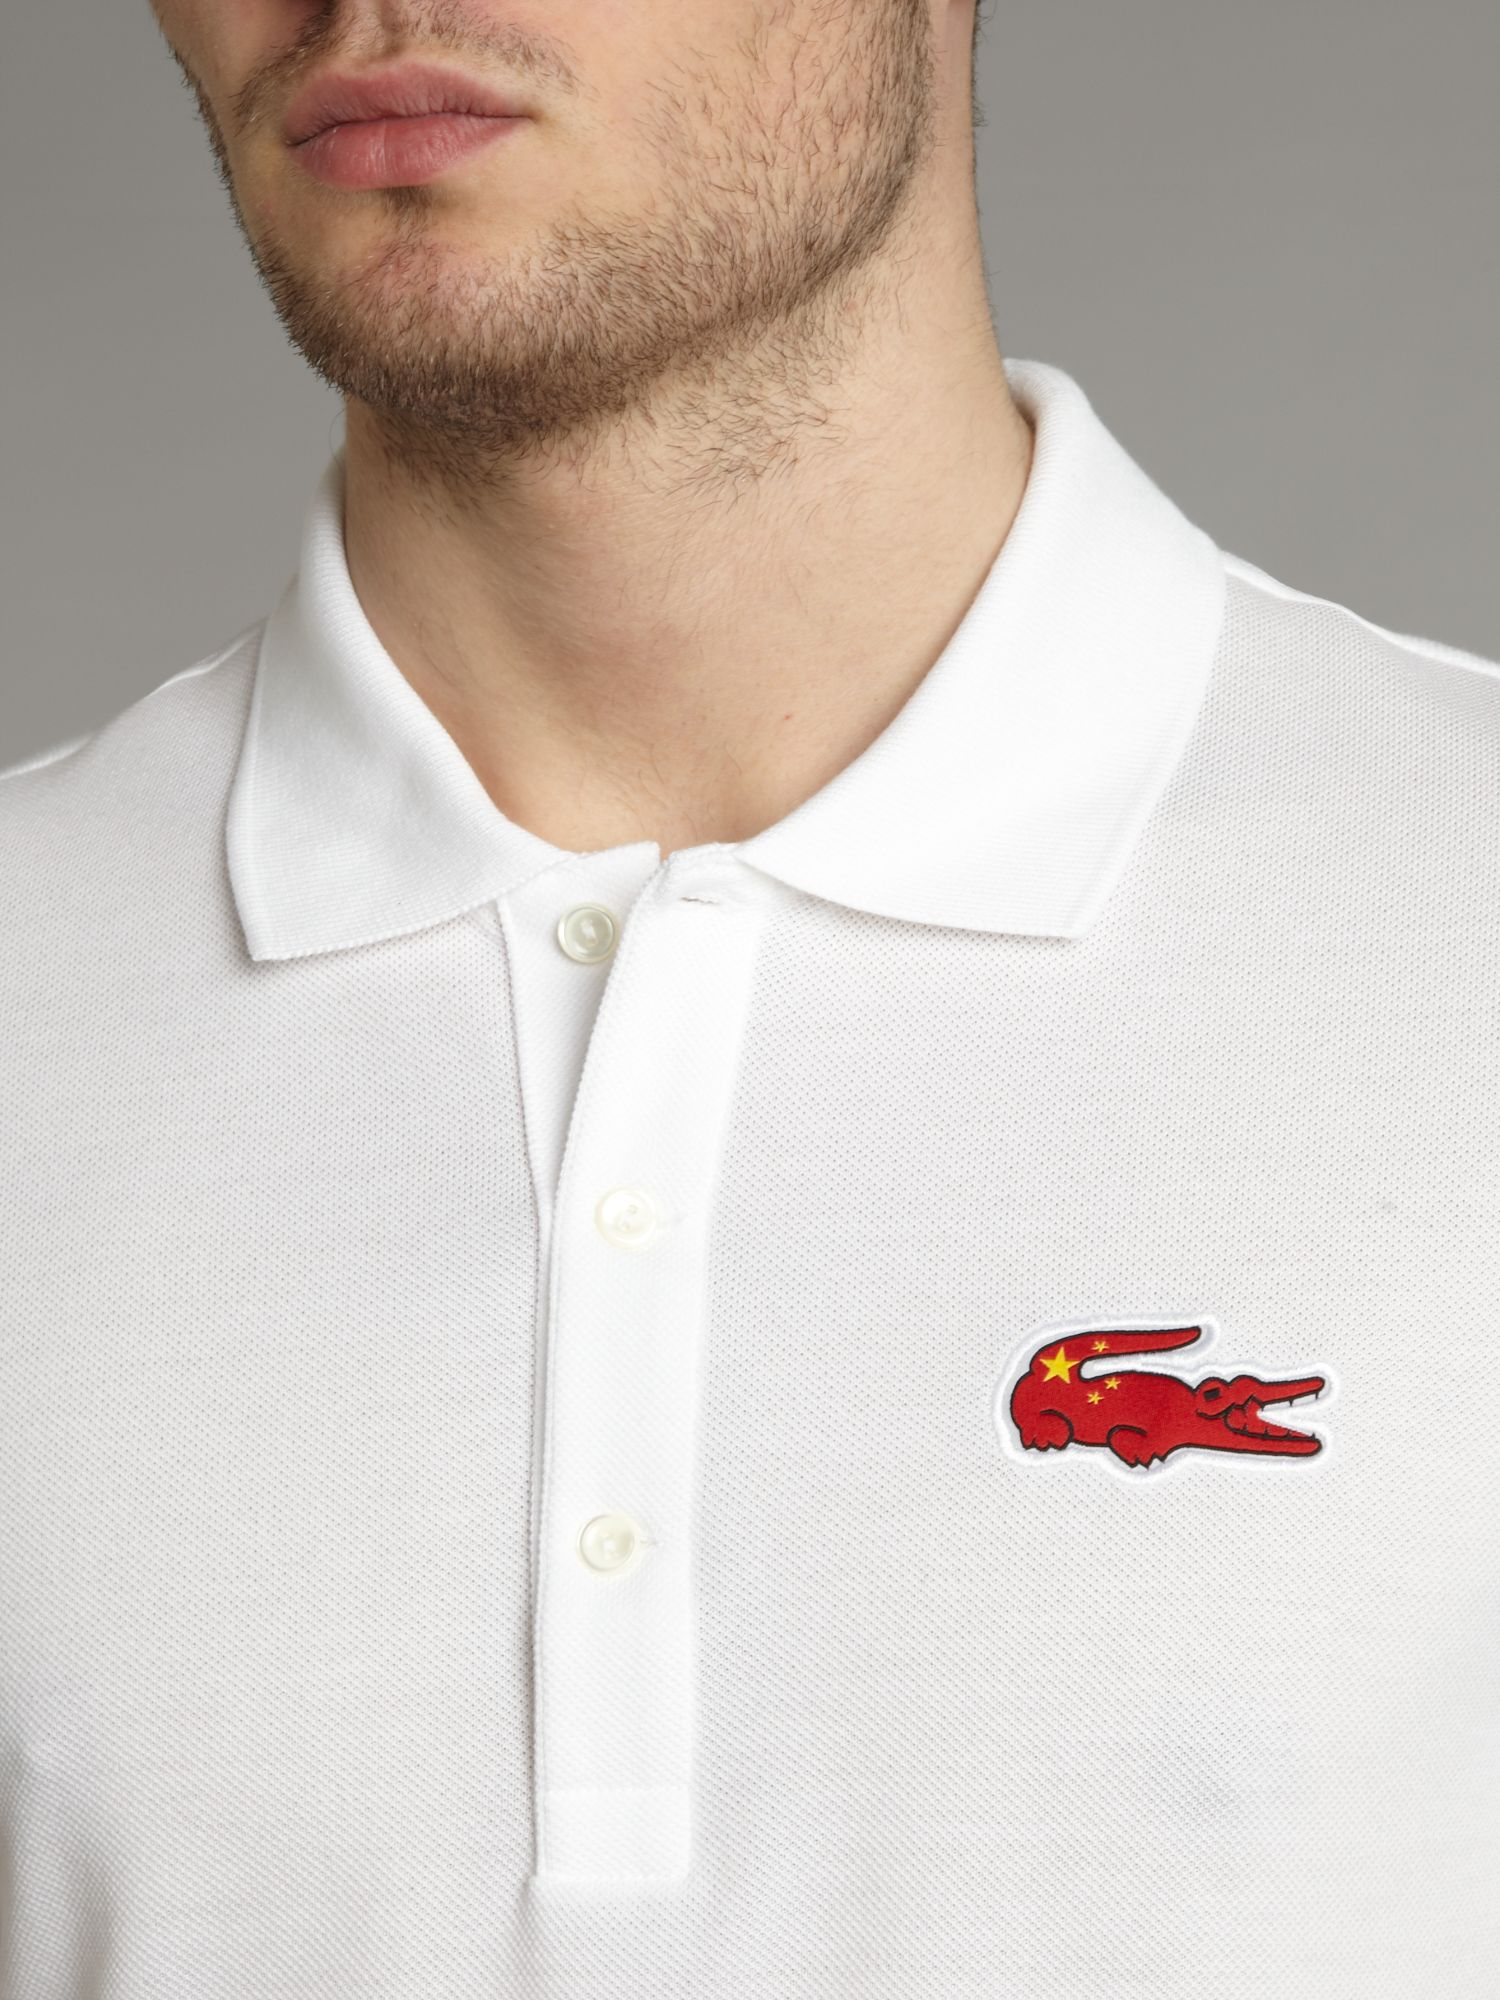 Lacoste Slim Fit China Croc Polo Shirt In White For Men Lyst